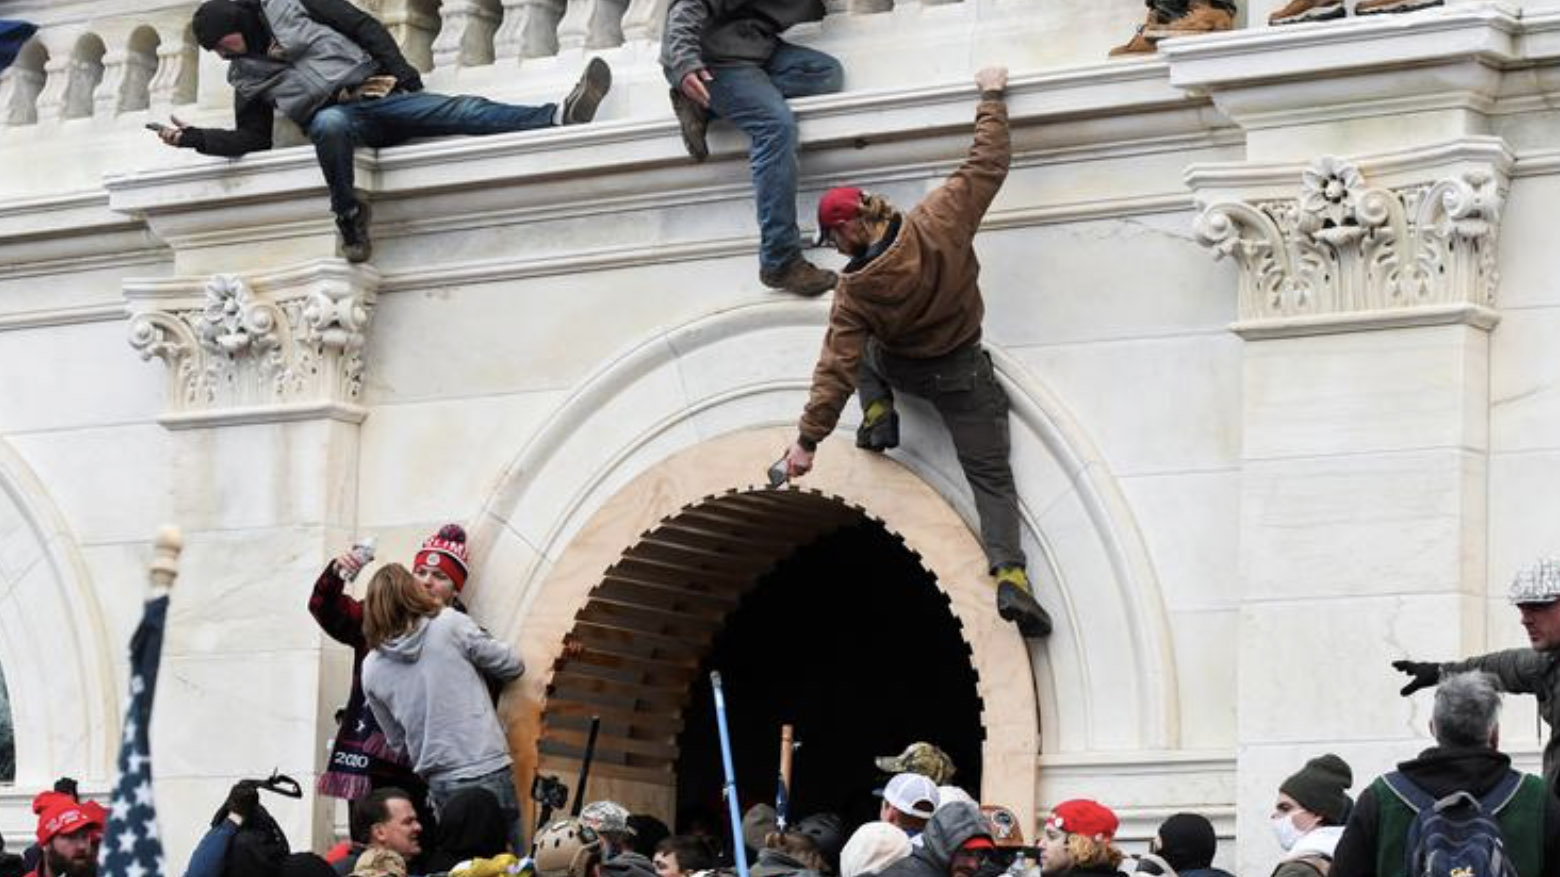 US diplomats say Trump to blame for the Capitol chaos, as more rioters arrested